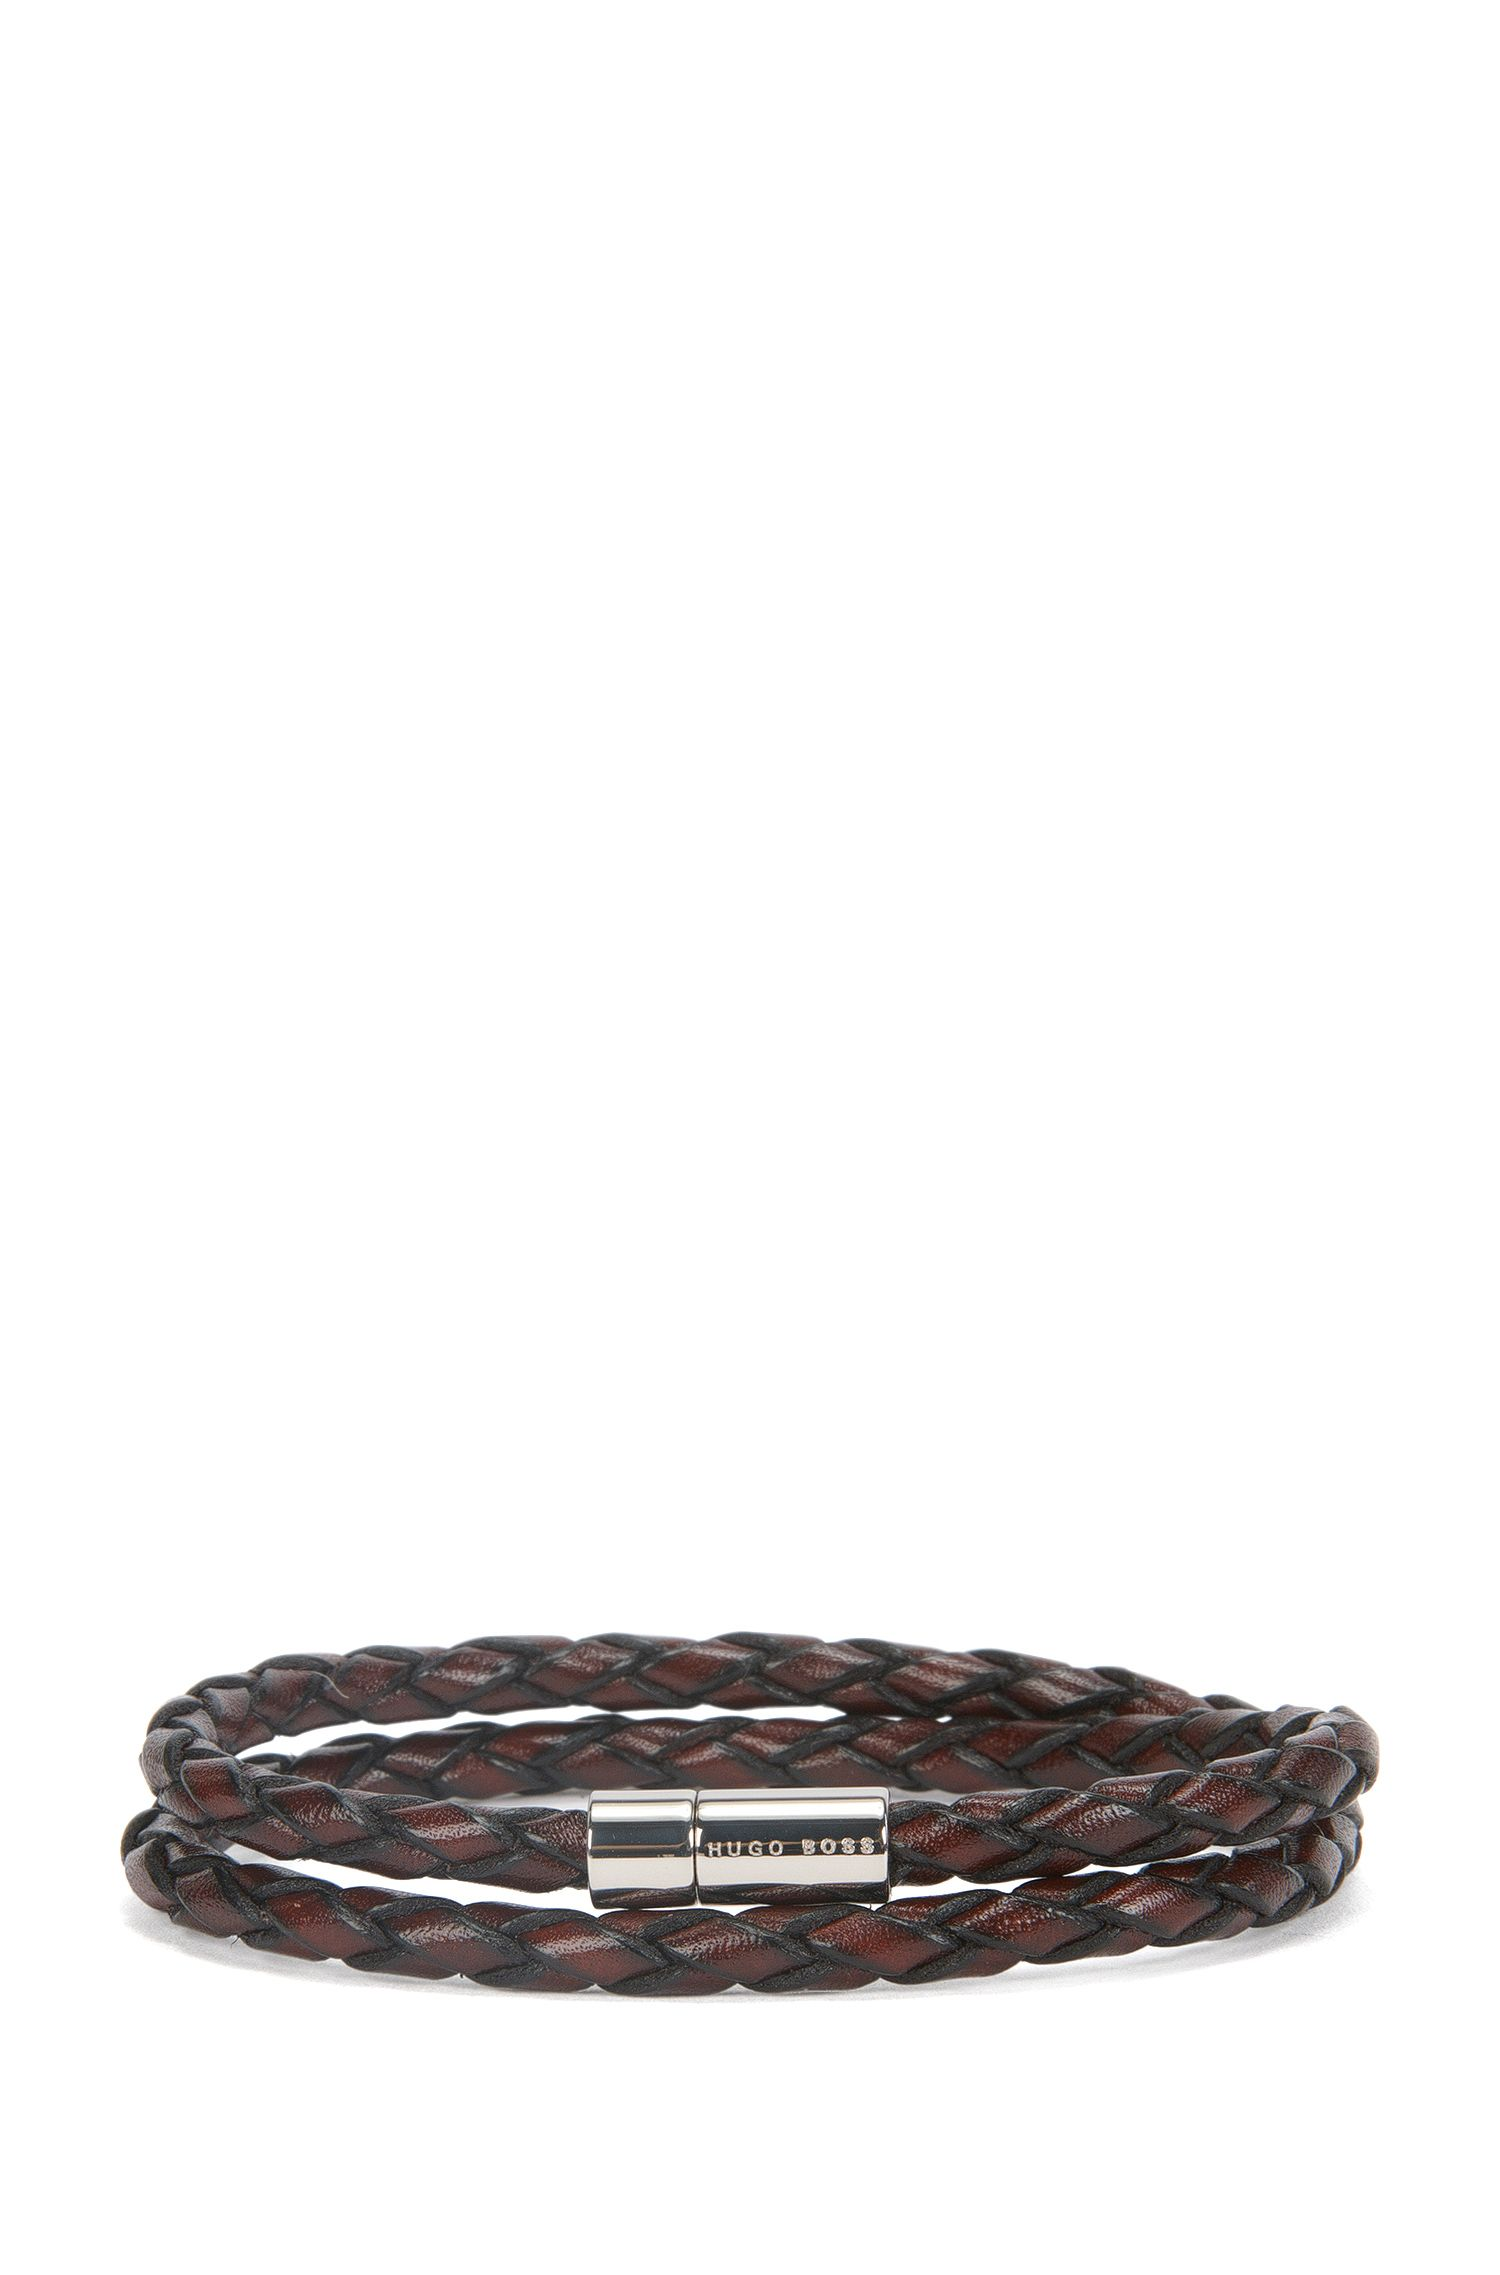 'Boris' | Leather Double-Wrap Bracelet, Brown